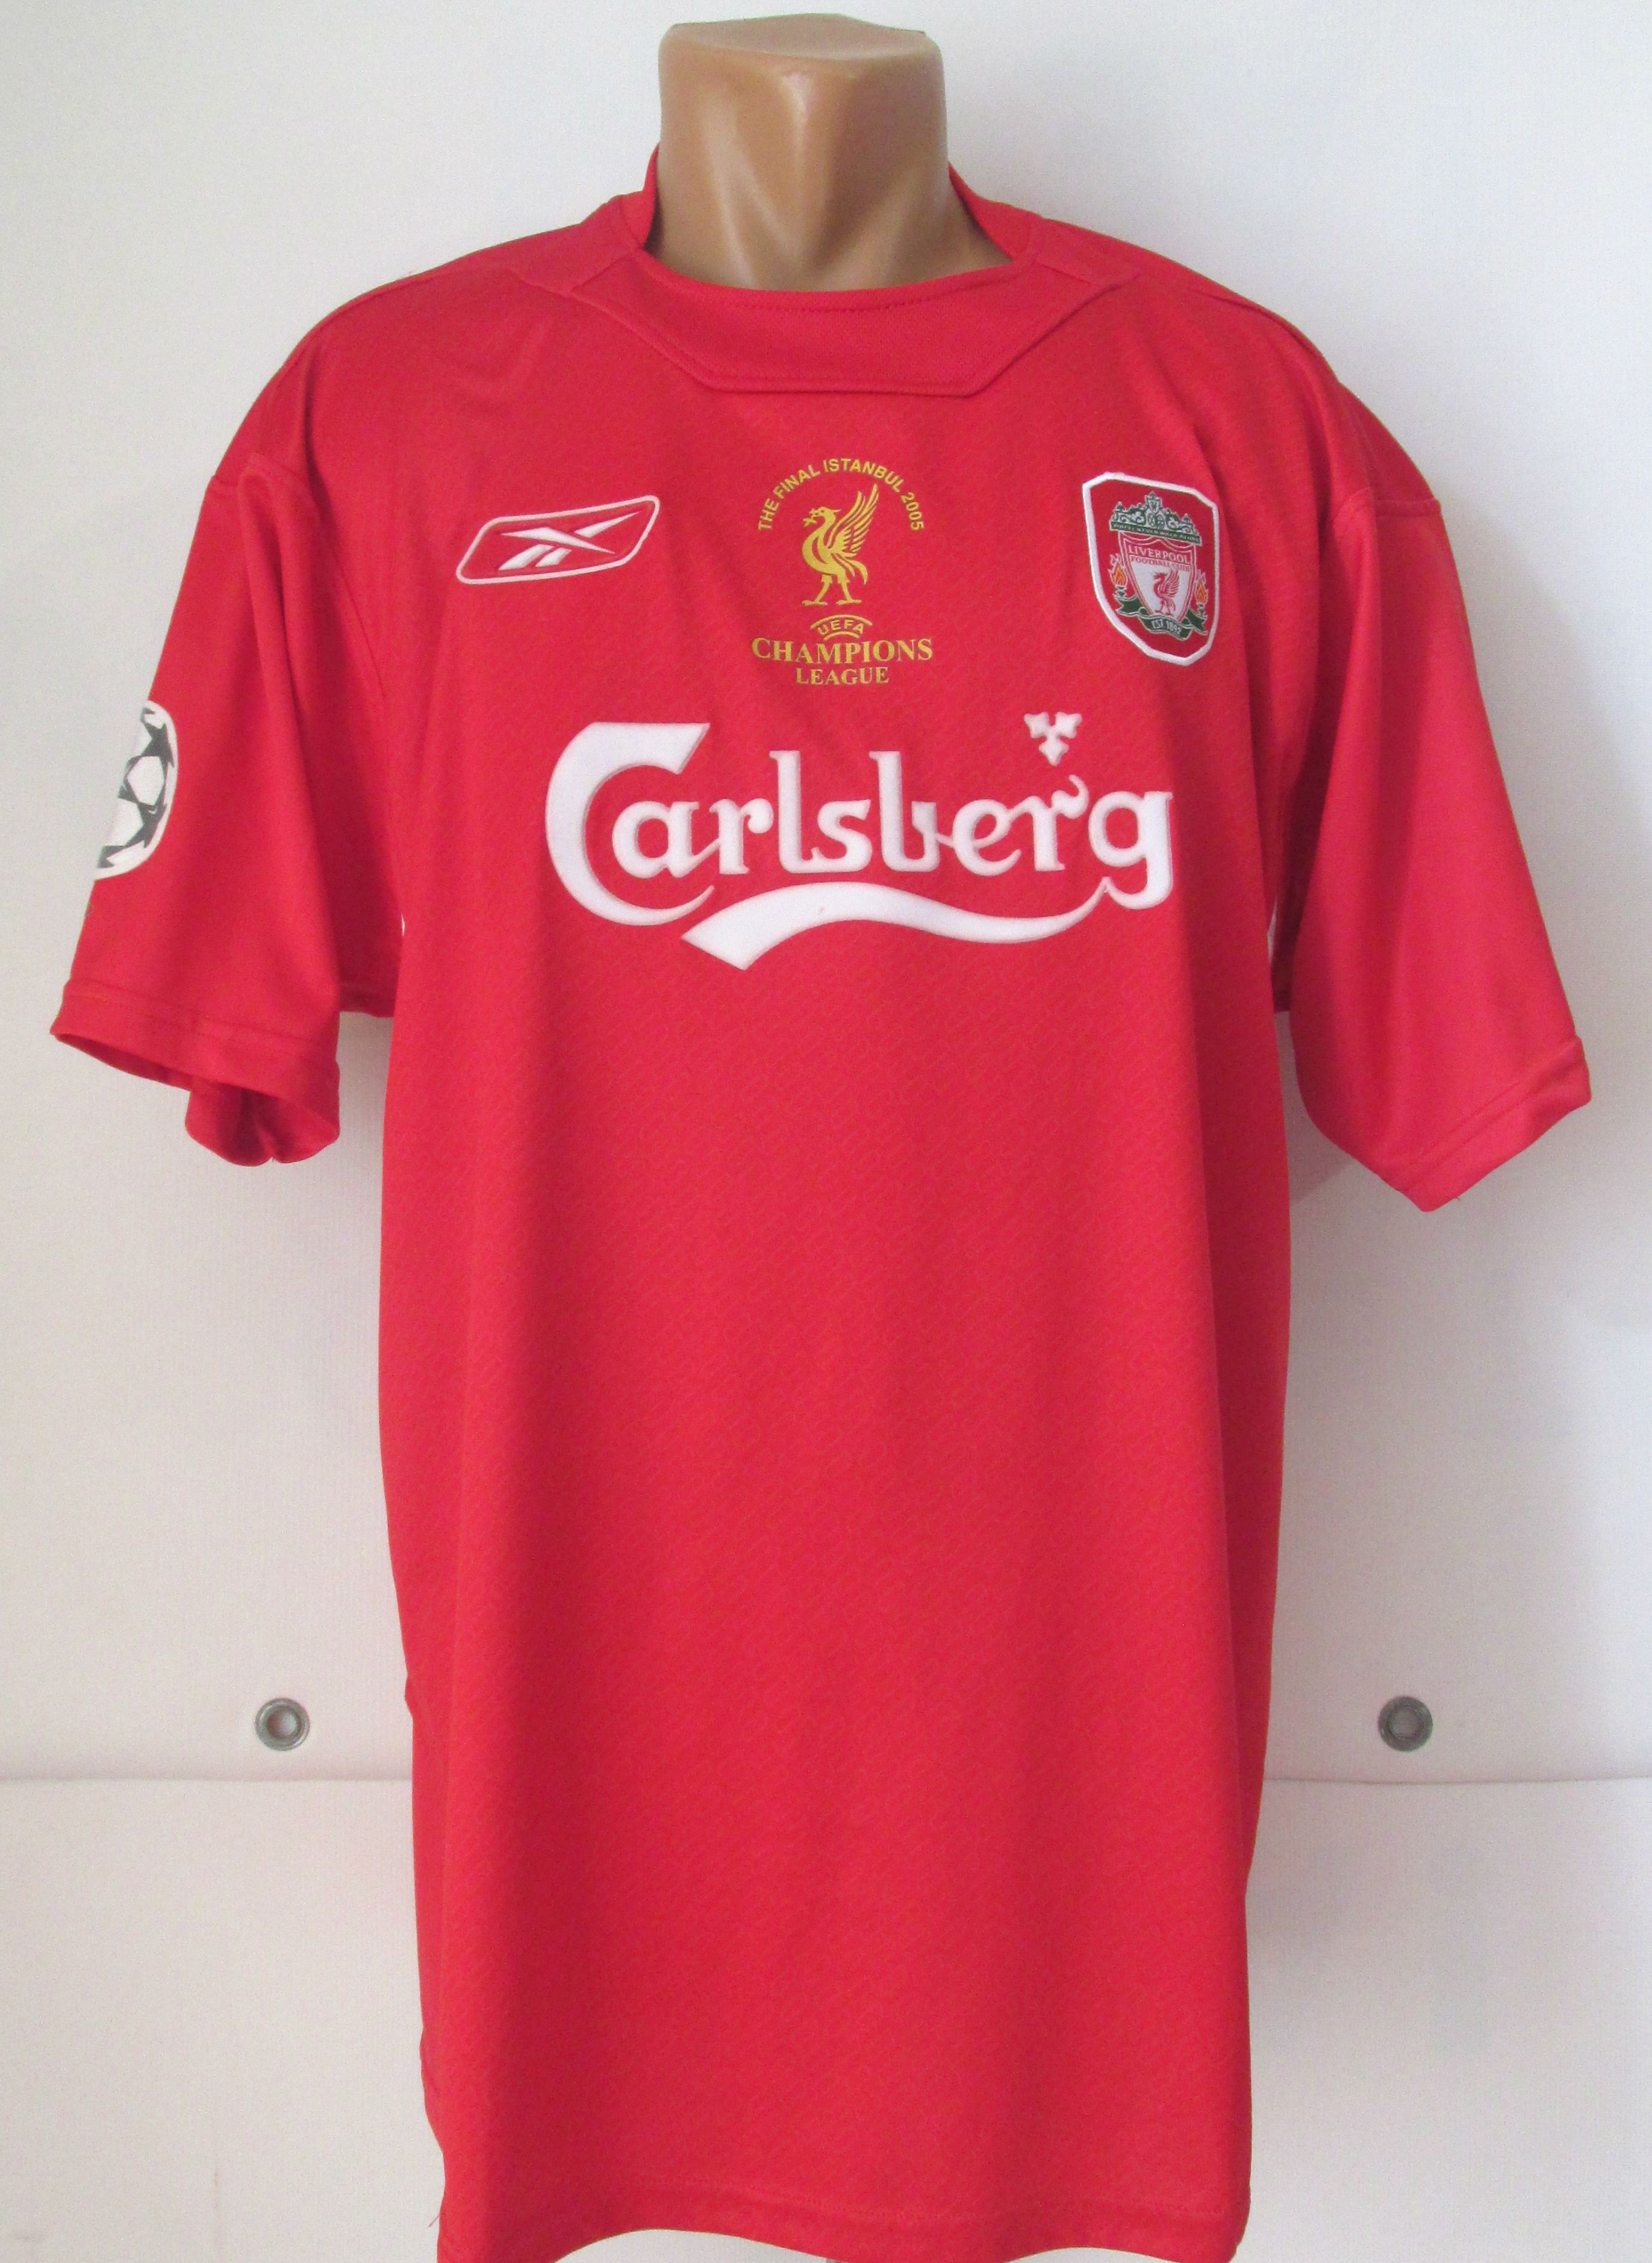 246402bea35 Liverpool 2005 special Champions League football shirt Louis Garcia  10 by  Reebok replica LFC Winners CL Istanbul final jersey soccer  liverpool  lfc  ...